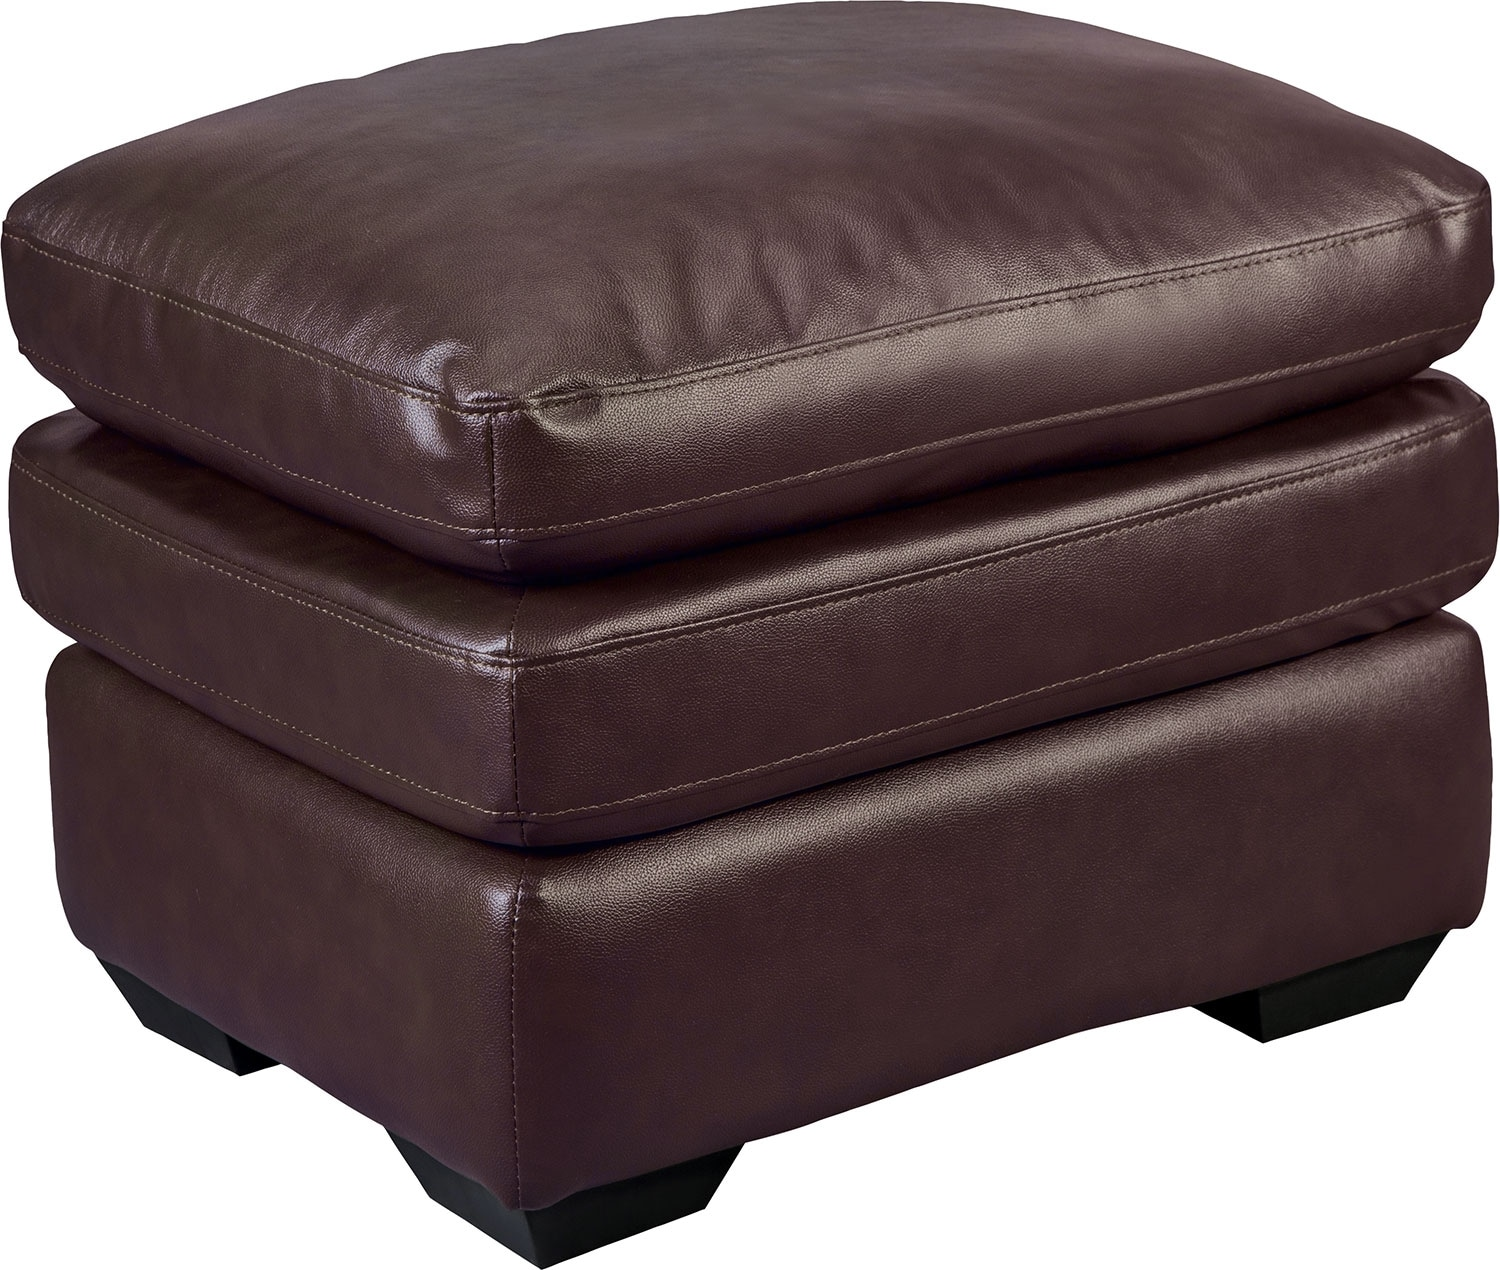 Marty Genuine Leather Ottoman - Brown